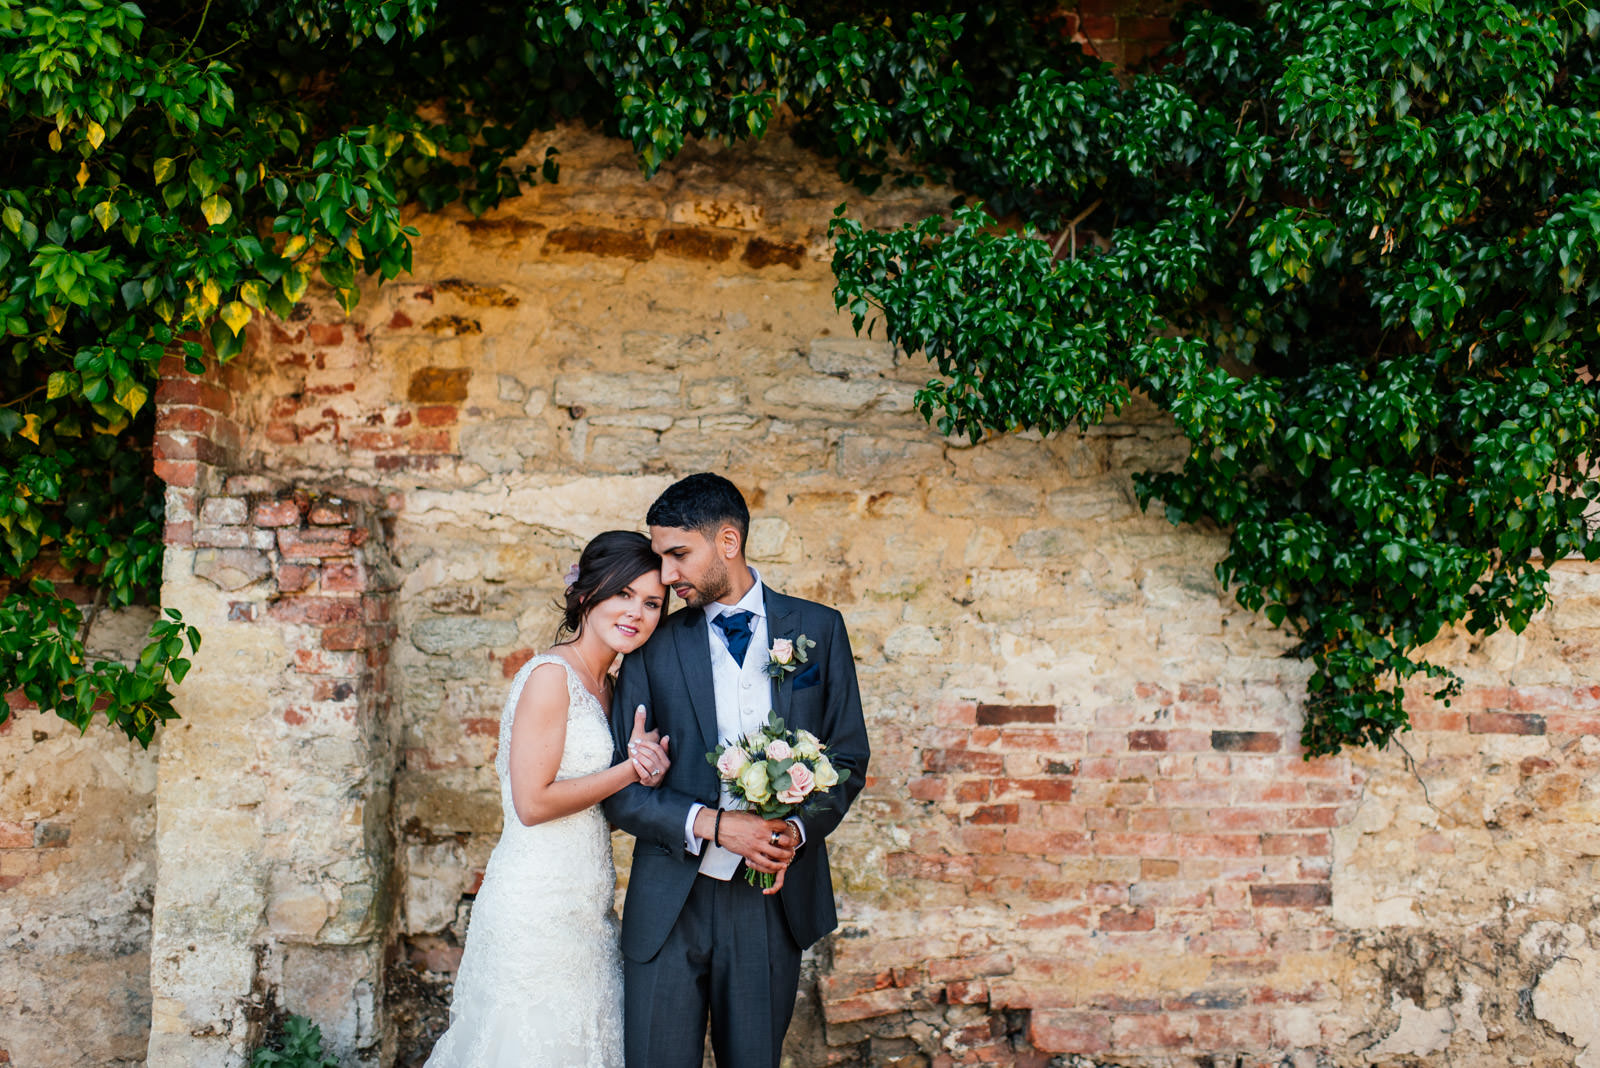 Wedding at Barton Hall